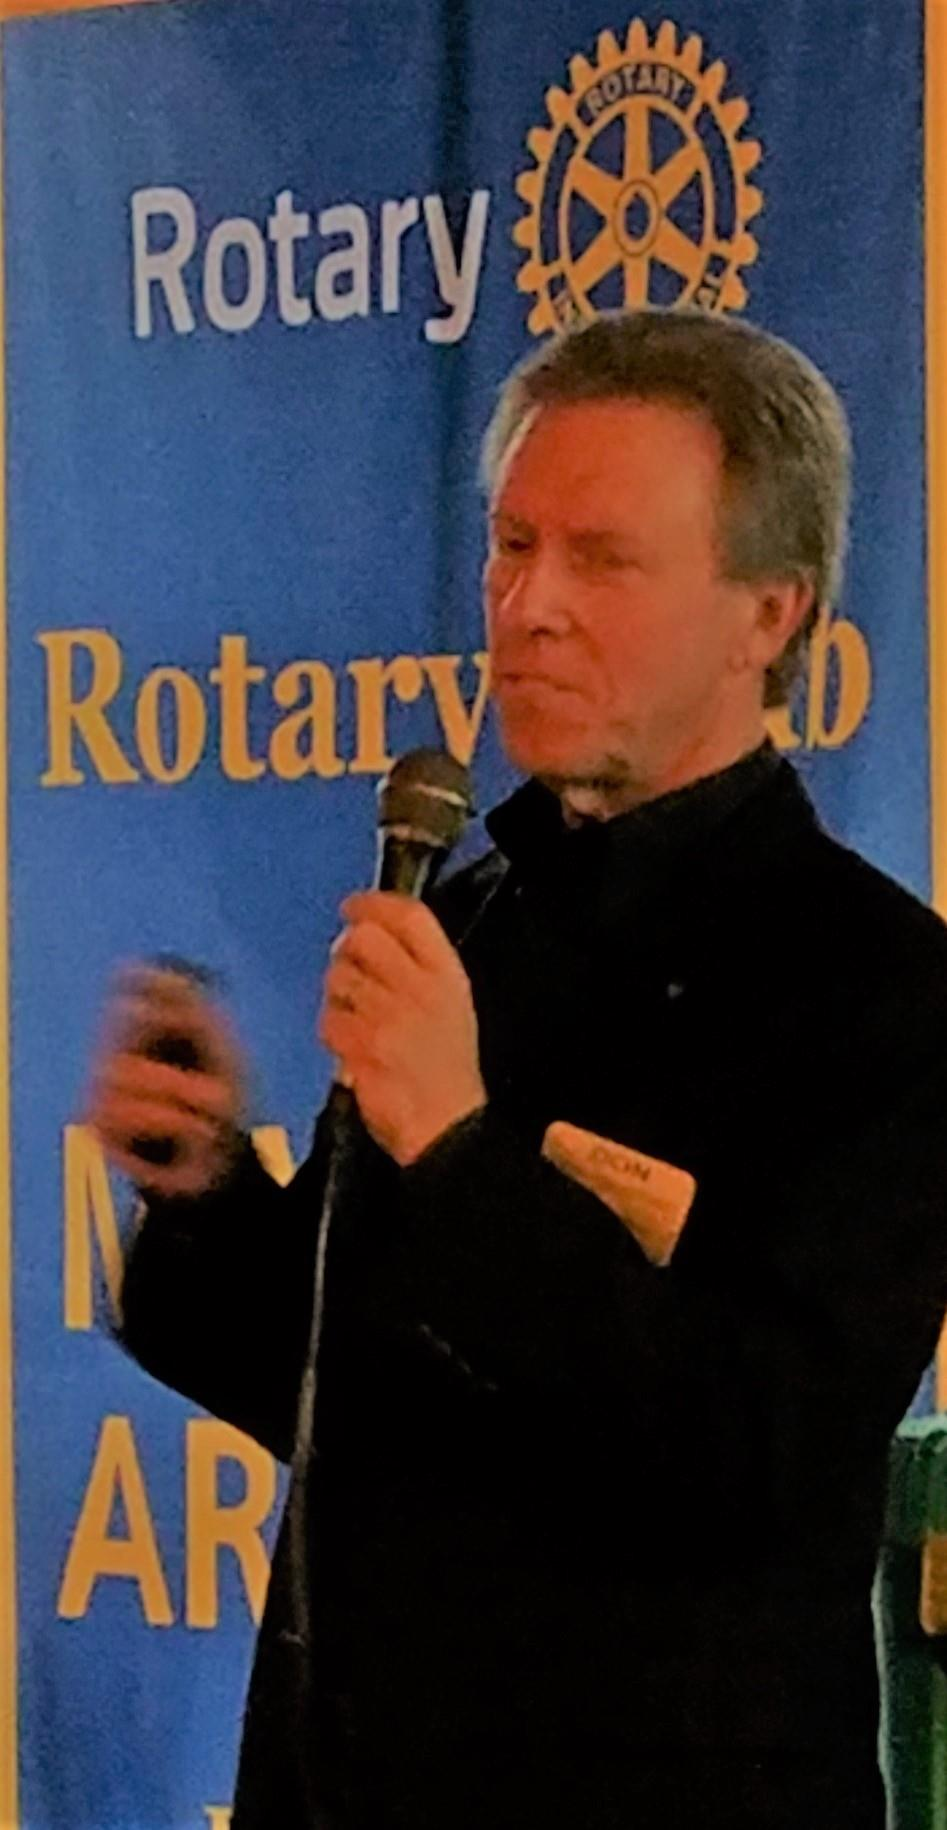 Stories Rotary Club Of Marana Jacket Tad Inner Polar Safety Since We Are On The Topic Don Jorgensen He Was Our Speaker And Gave An Excellent Presentation Shelterbox